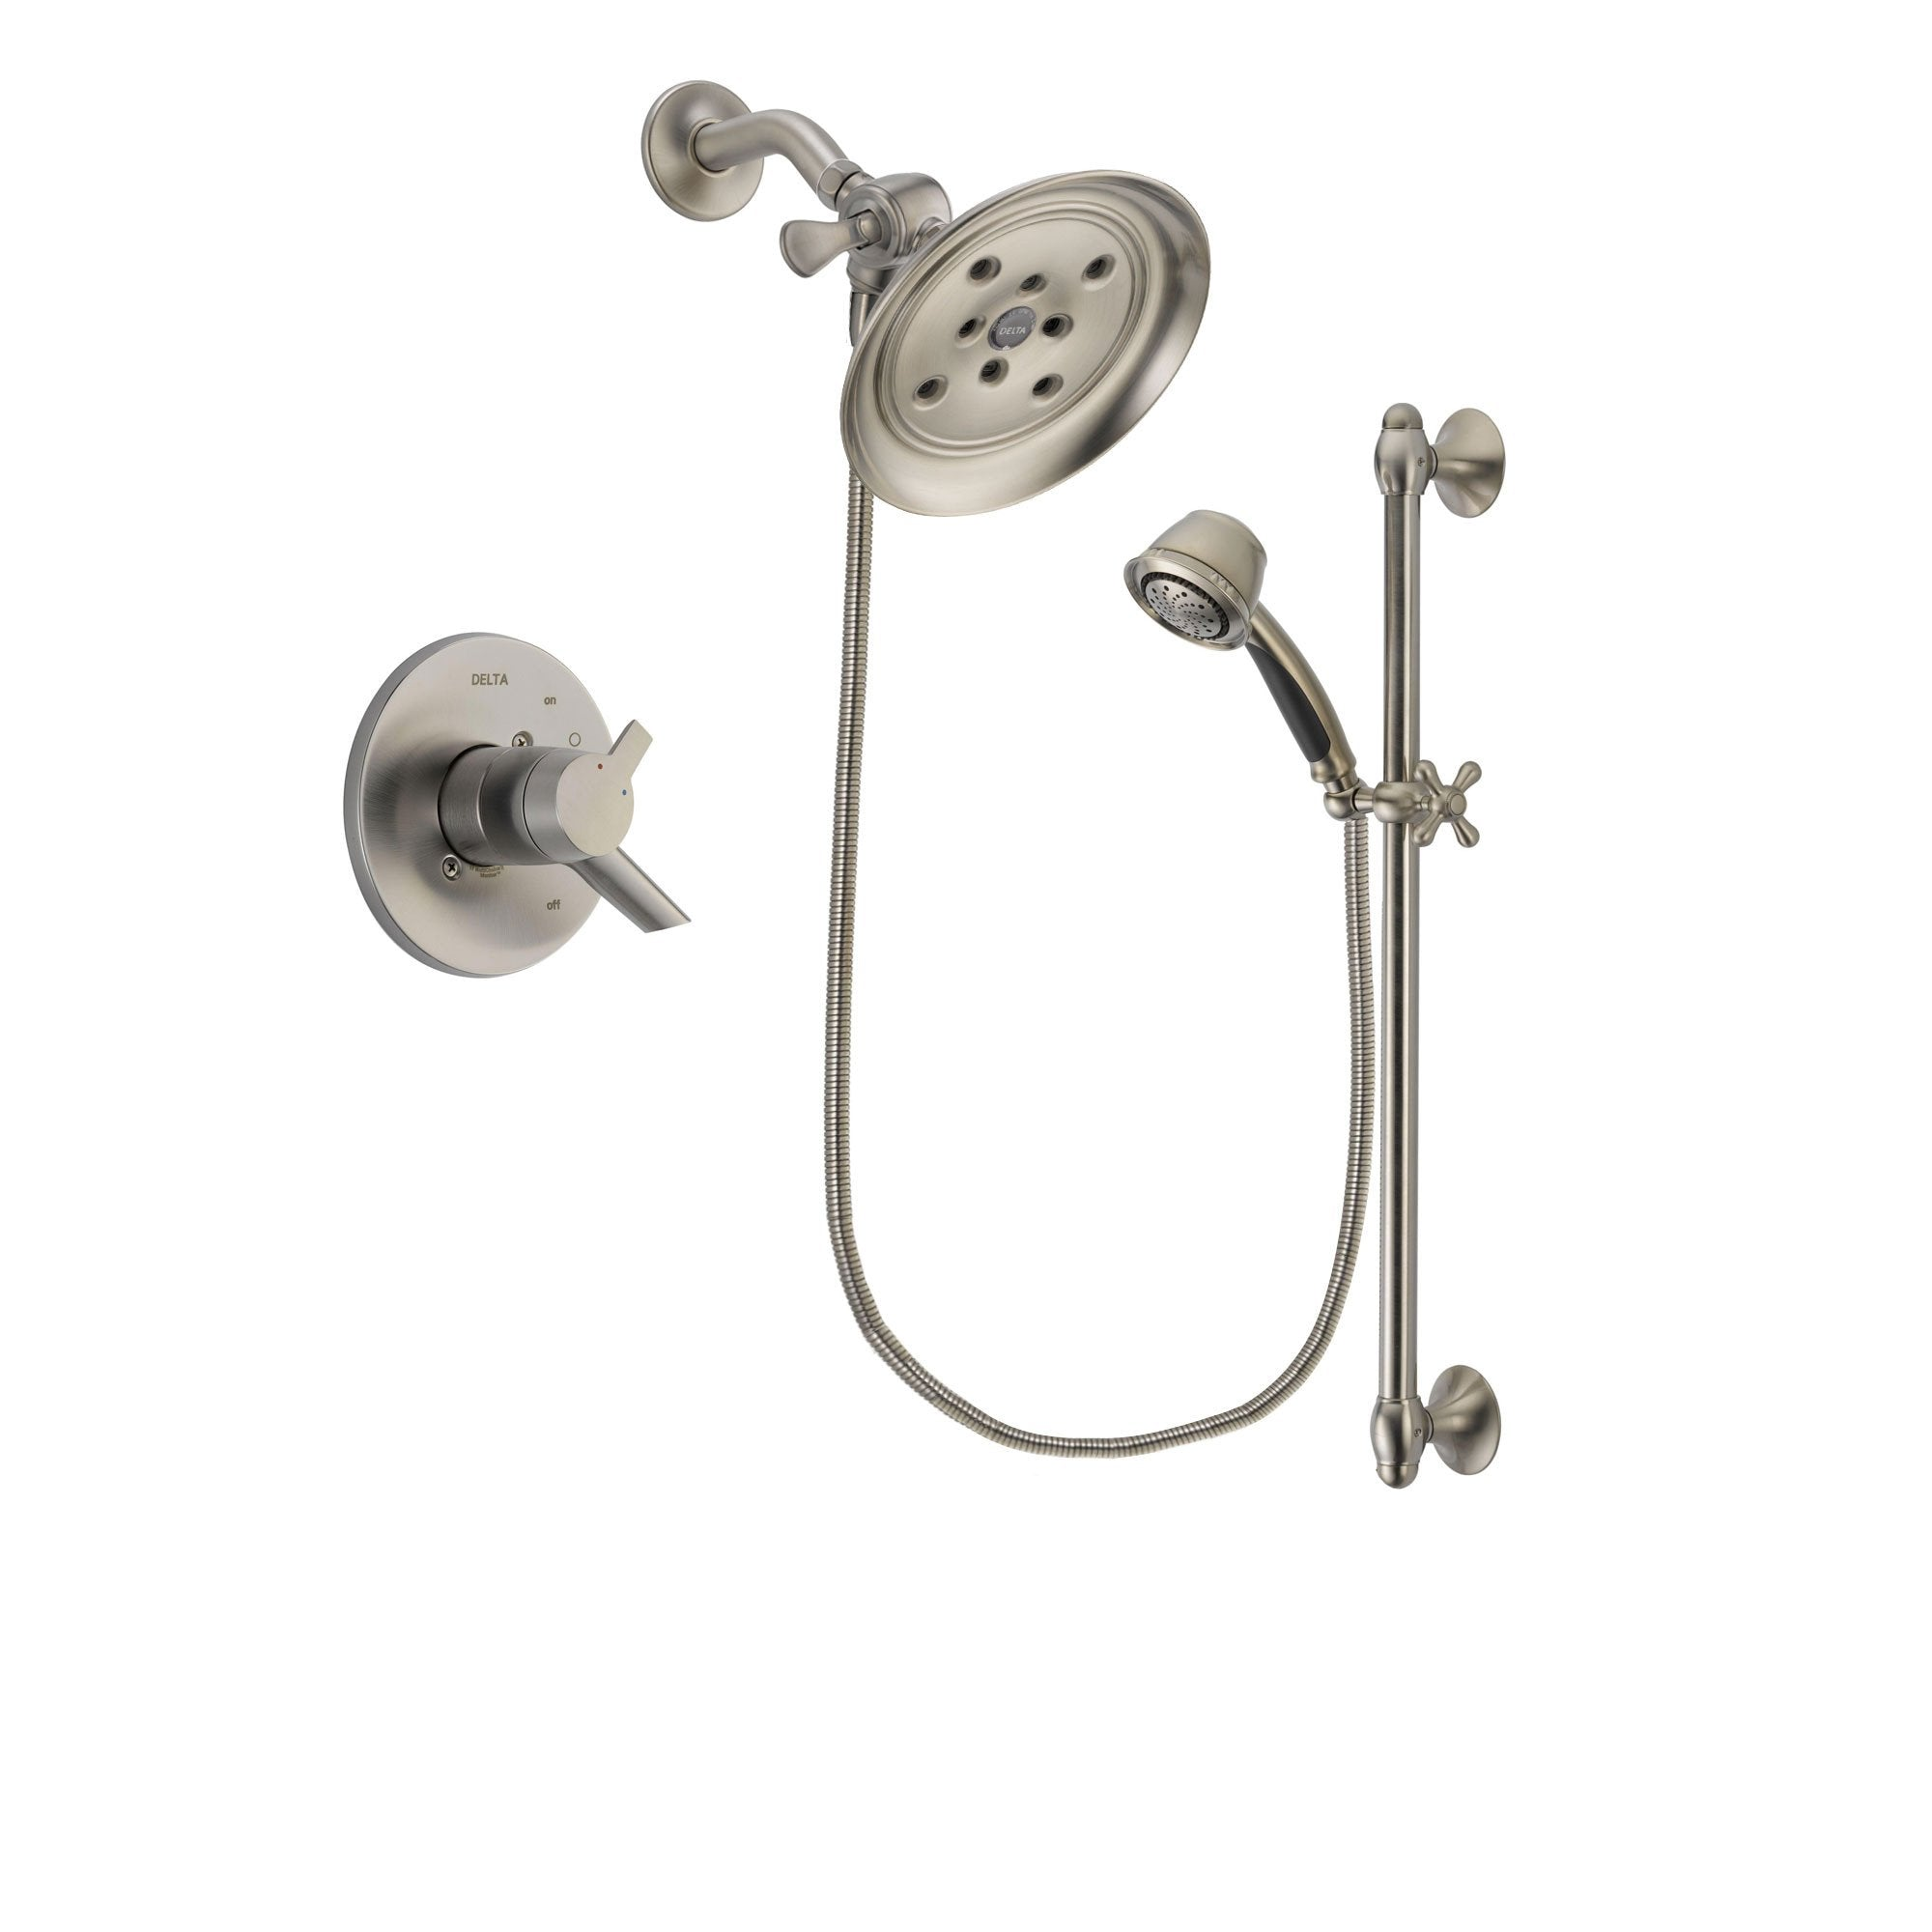 Delta Compel Stainless Steel Finish Shower Faucet System w/ Hand Spray DSP1334V